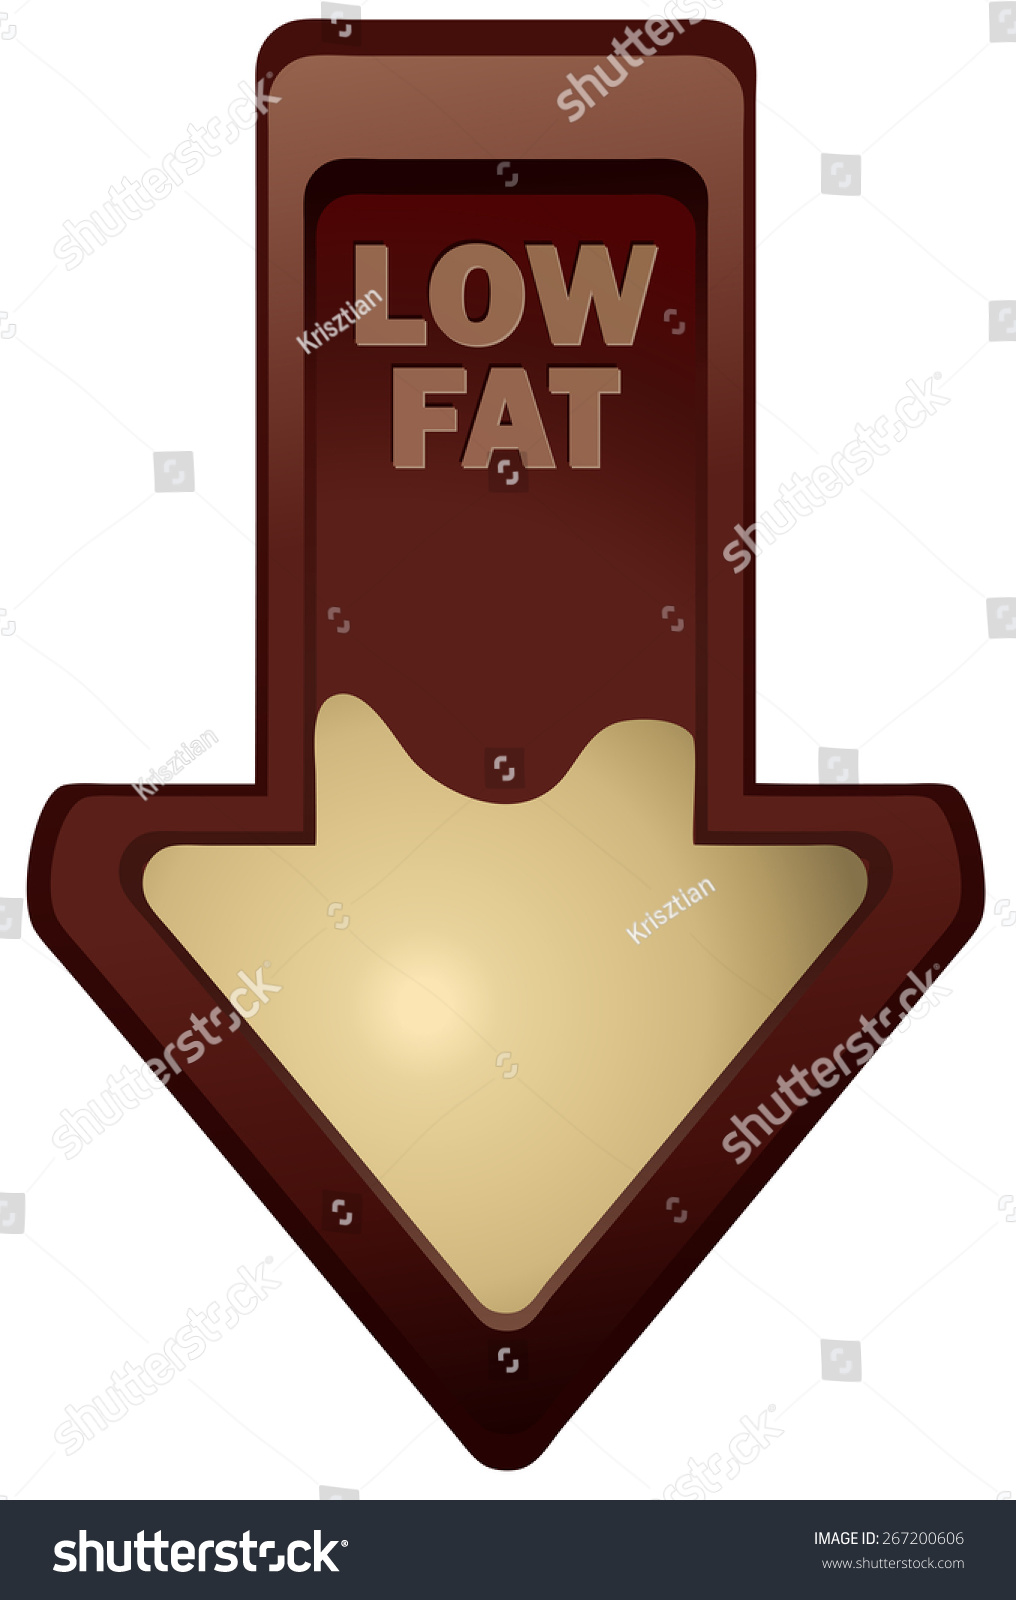 Low fat arrow vector illustration isolated stock vector 267200606 low fat arrow vector illustration isolated on white background biocorpaavc